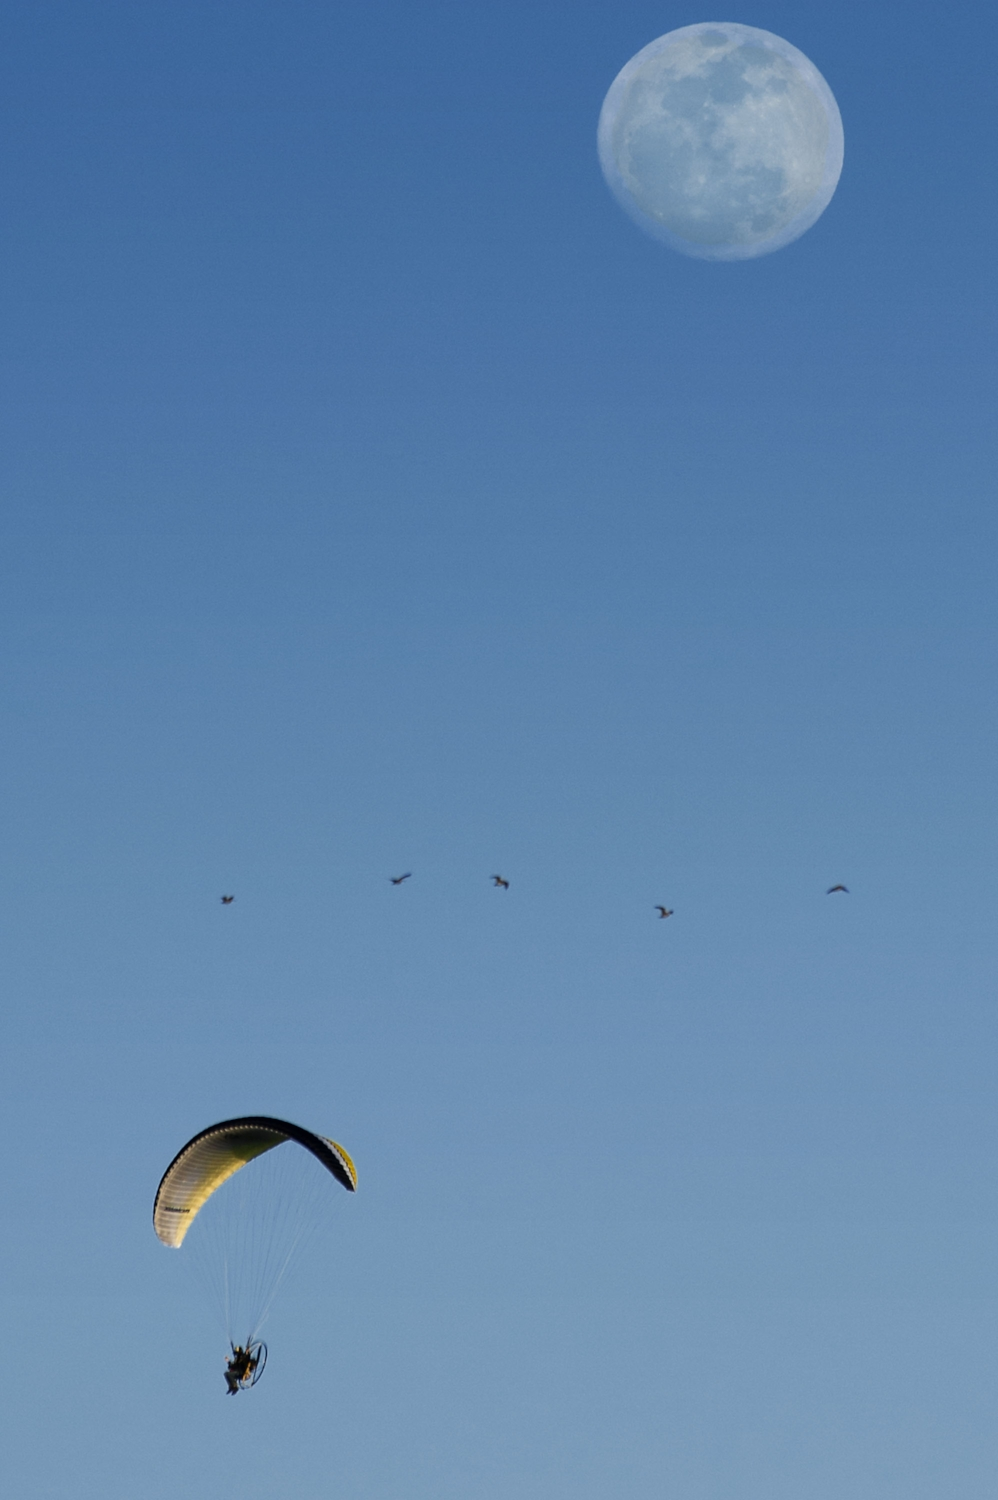 A flock of ducks flies past an ultralight pilot near White Rock Road in El Dorado Hills on Friday, March 14, 2014.